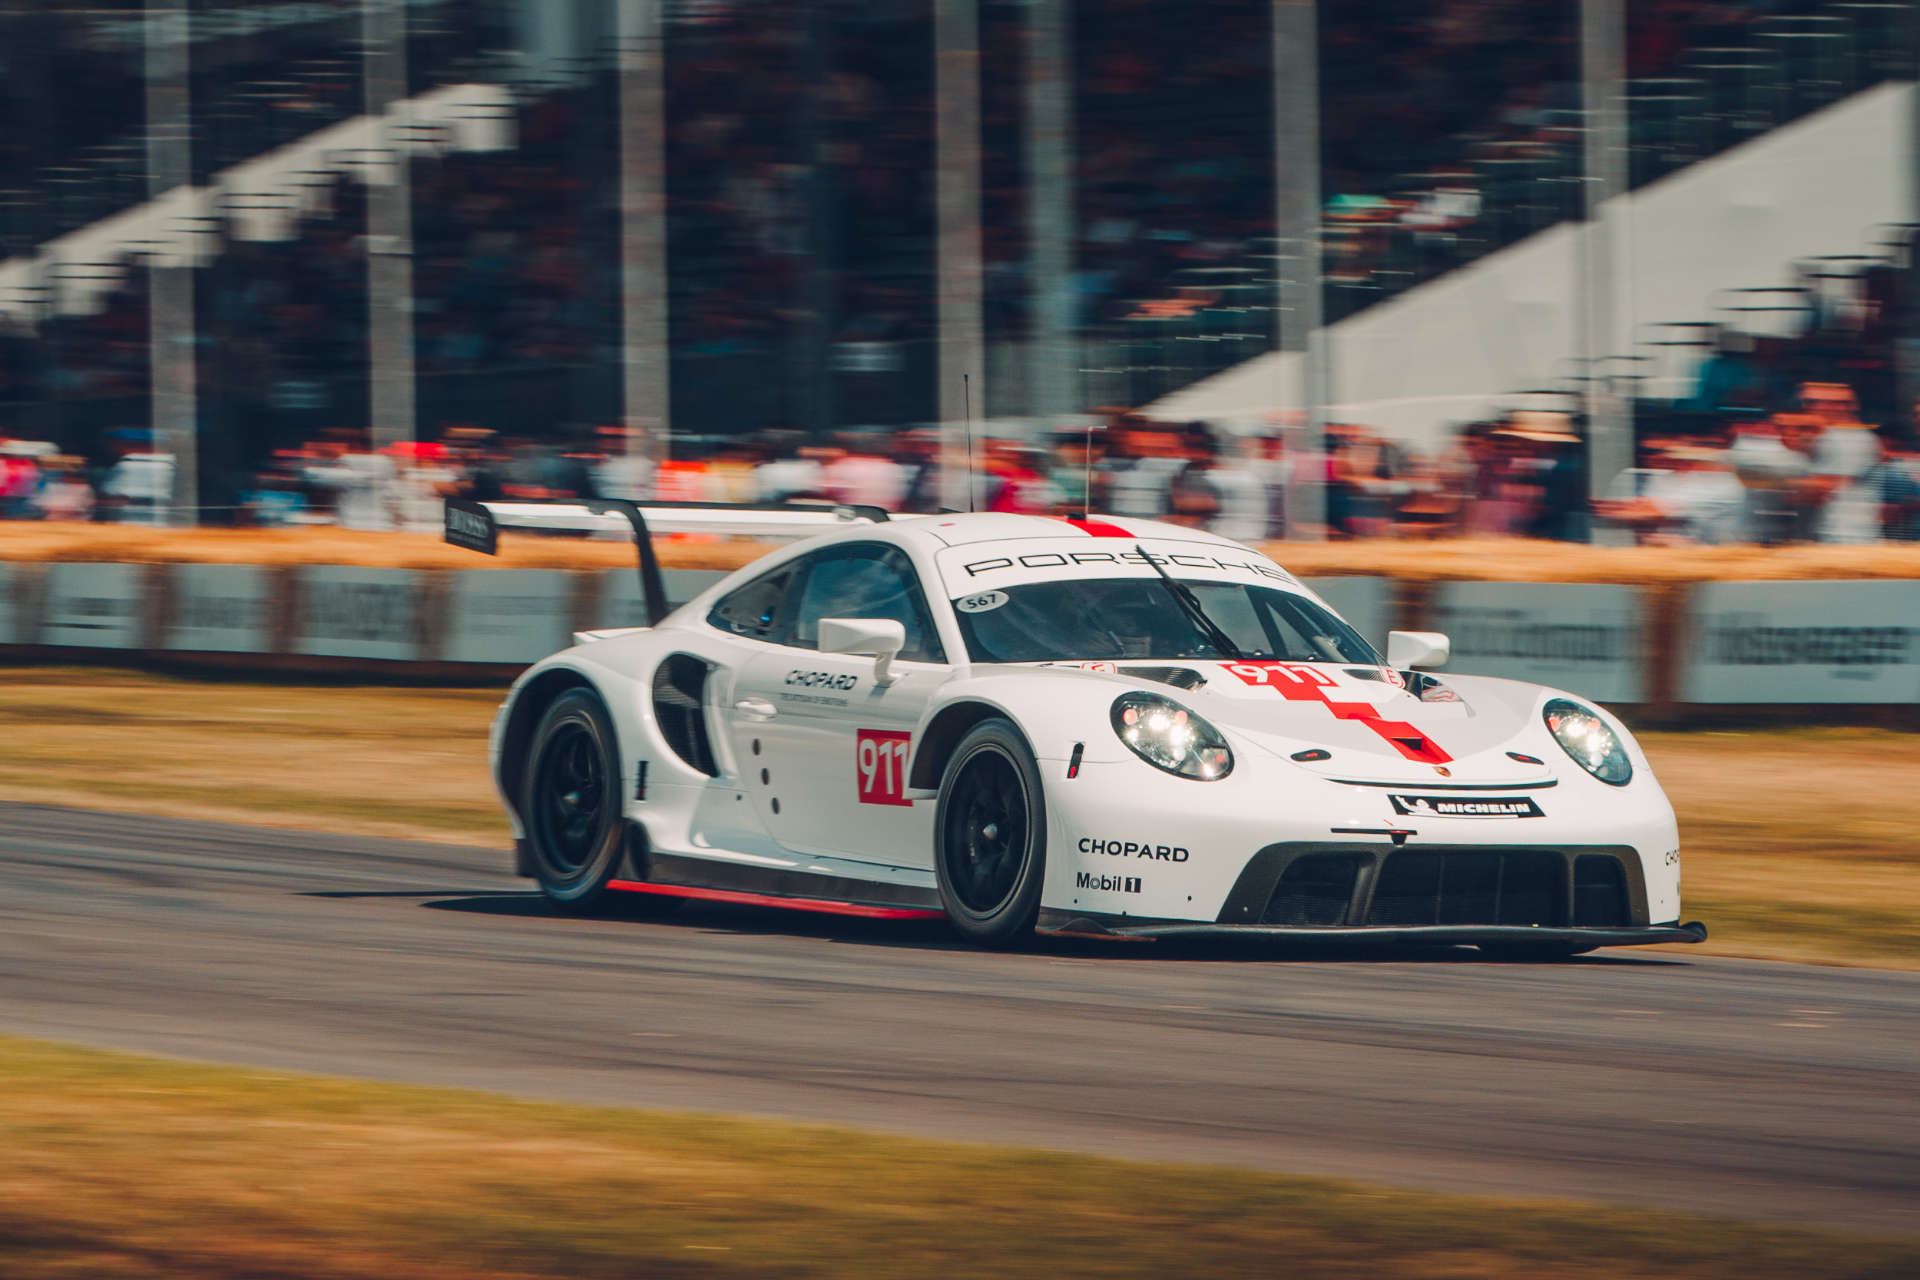 Porsche 911 RSR 2019 Goodwood Festival of Speed